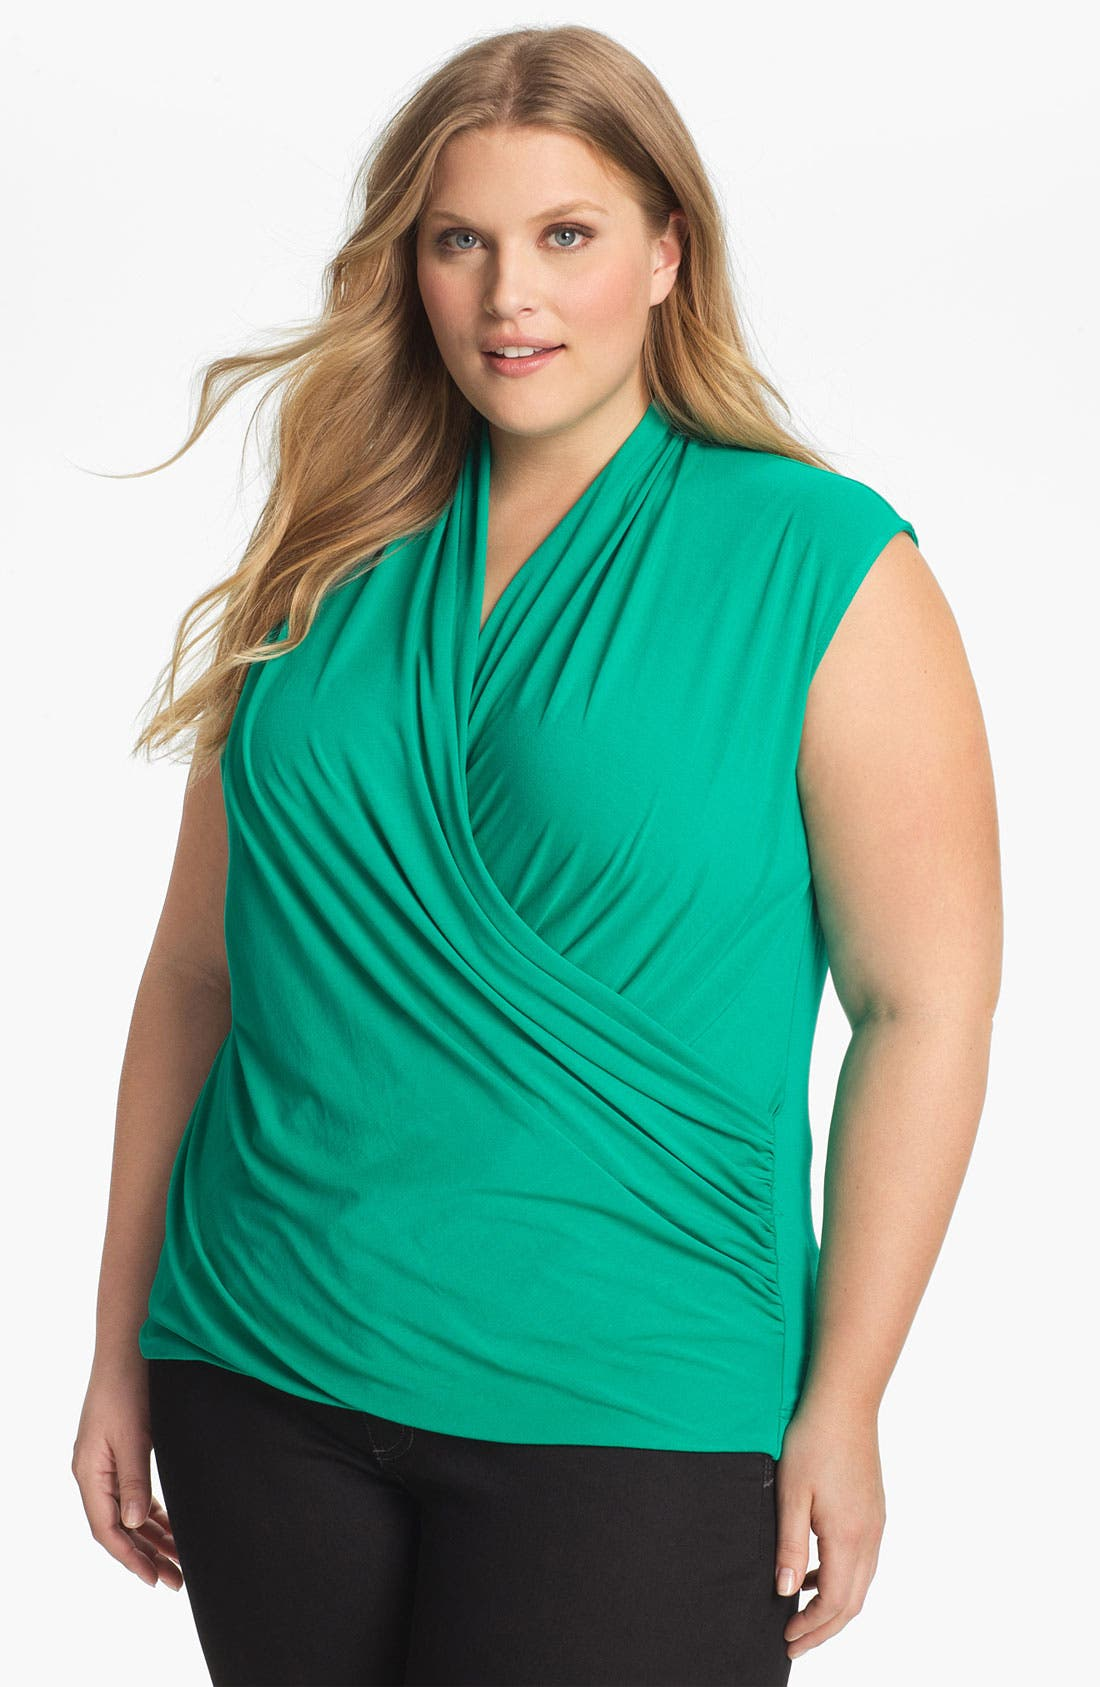 Alternate Image 1 Selected - Vince Camuto Faux Wrap Top (Plus)